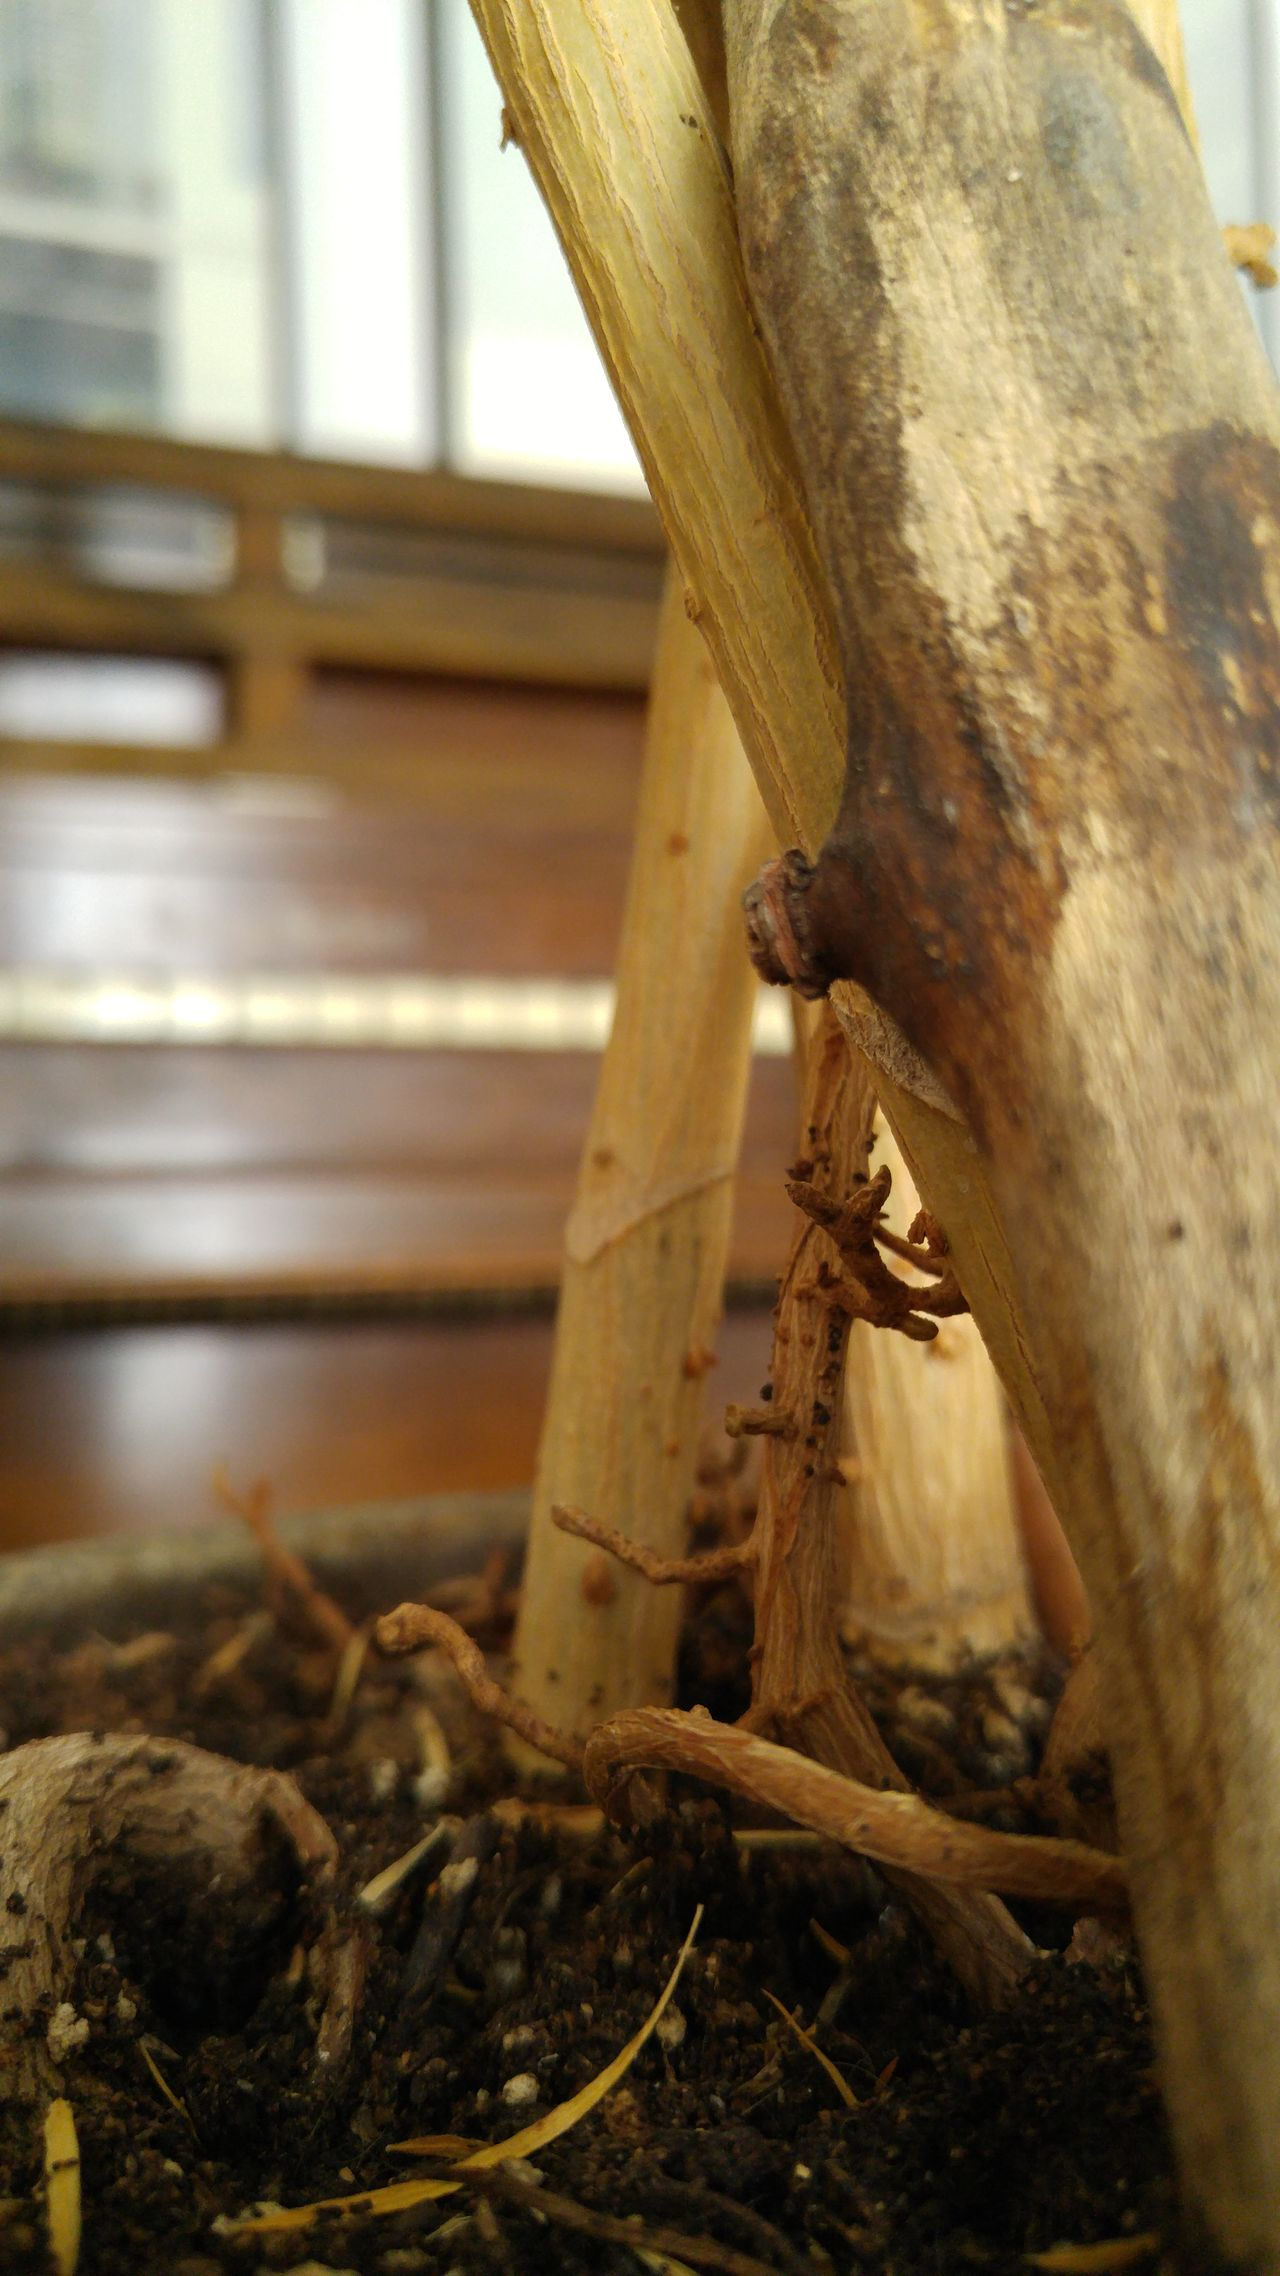 In the pot. Close-up Indoors  No People Plant Soil Plant Stalk Wood Grain Root